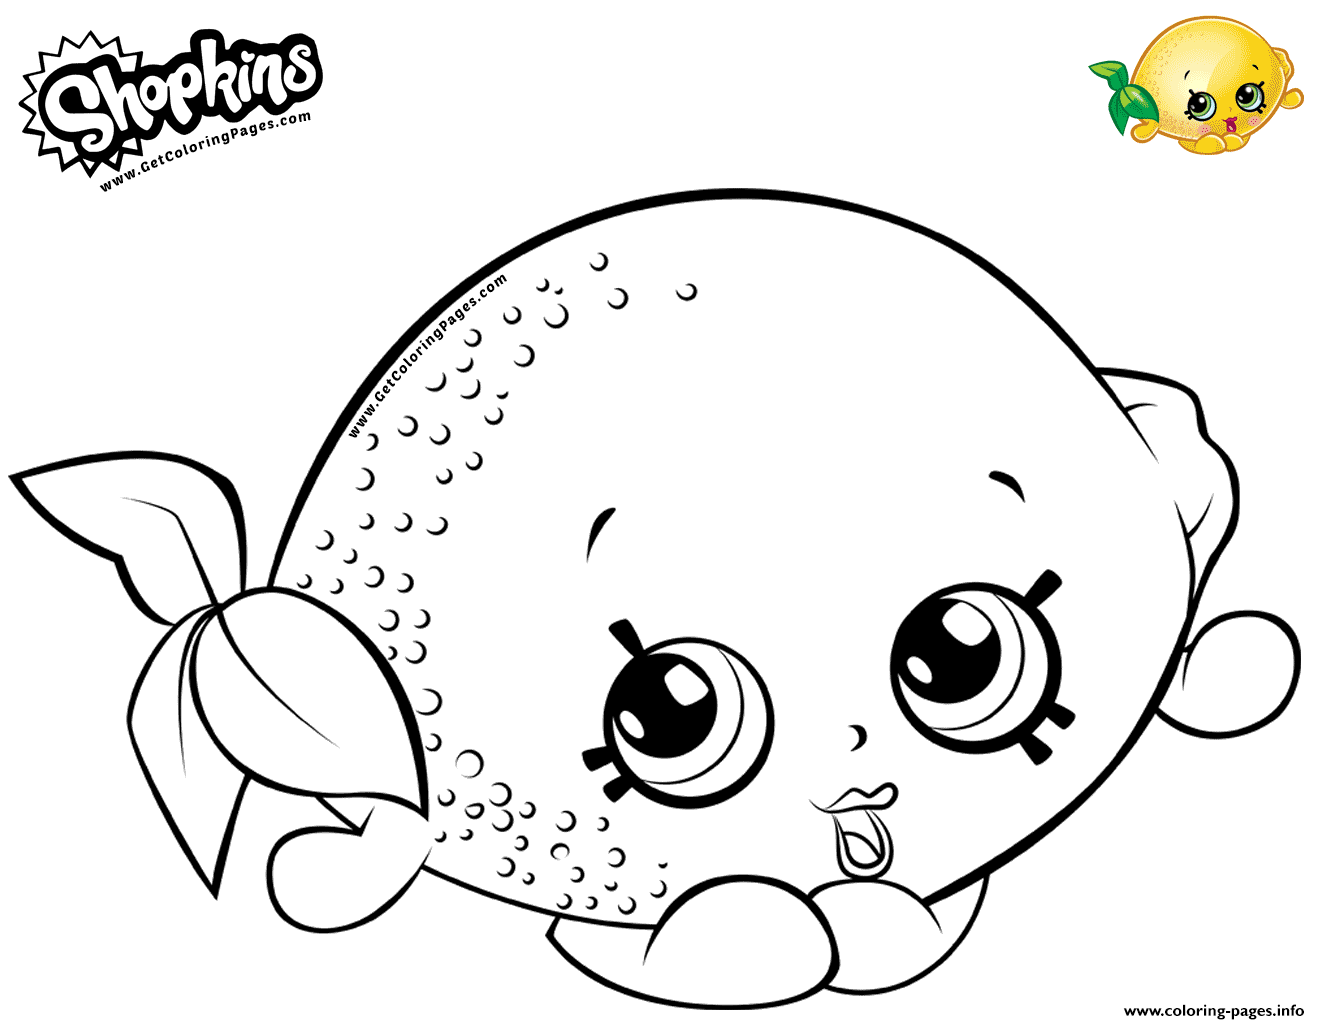 Cartoon Lemon Toy Coloring Pages Printable